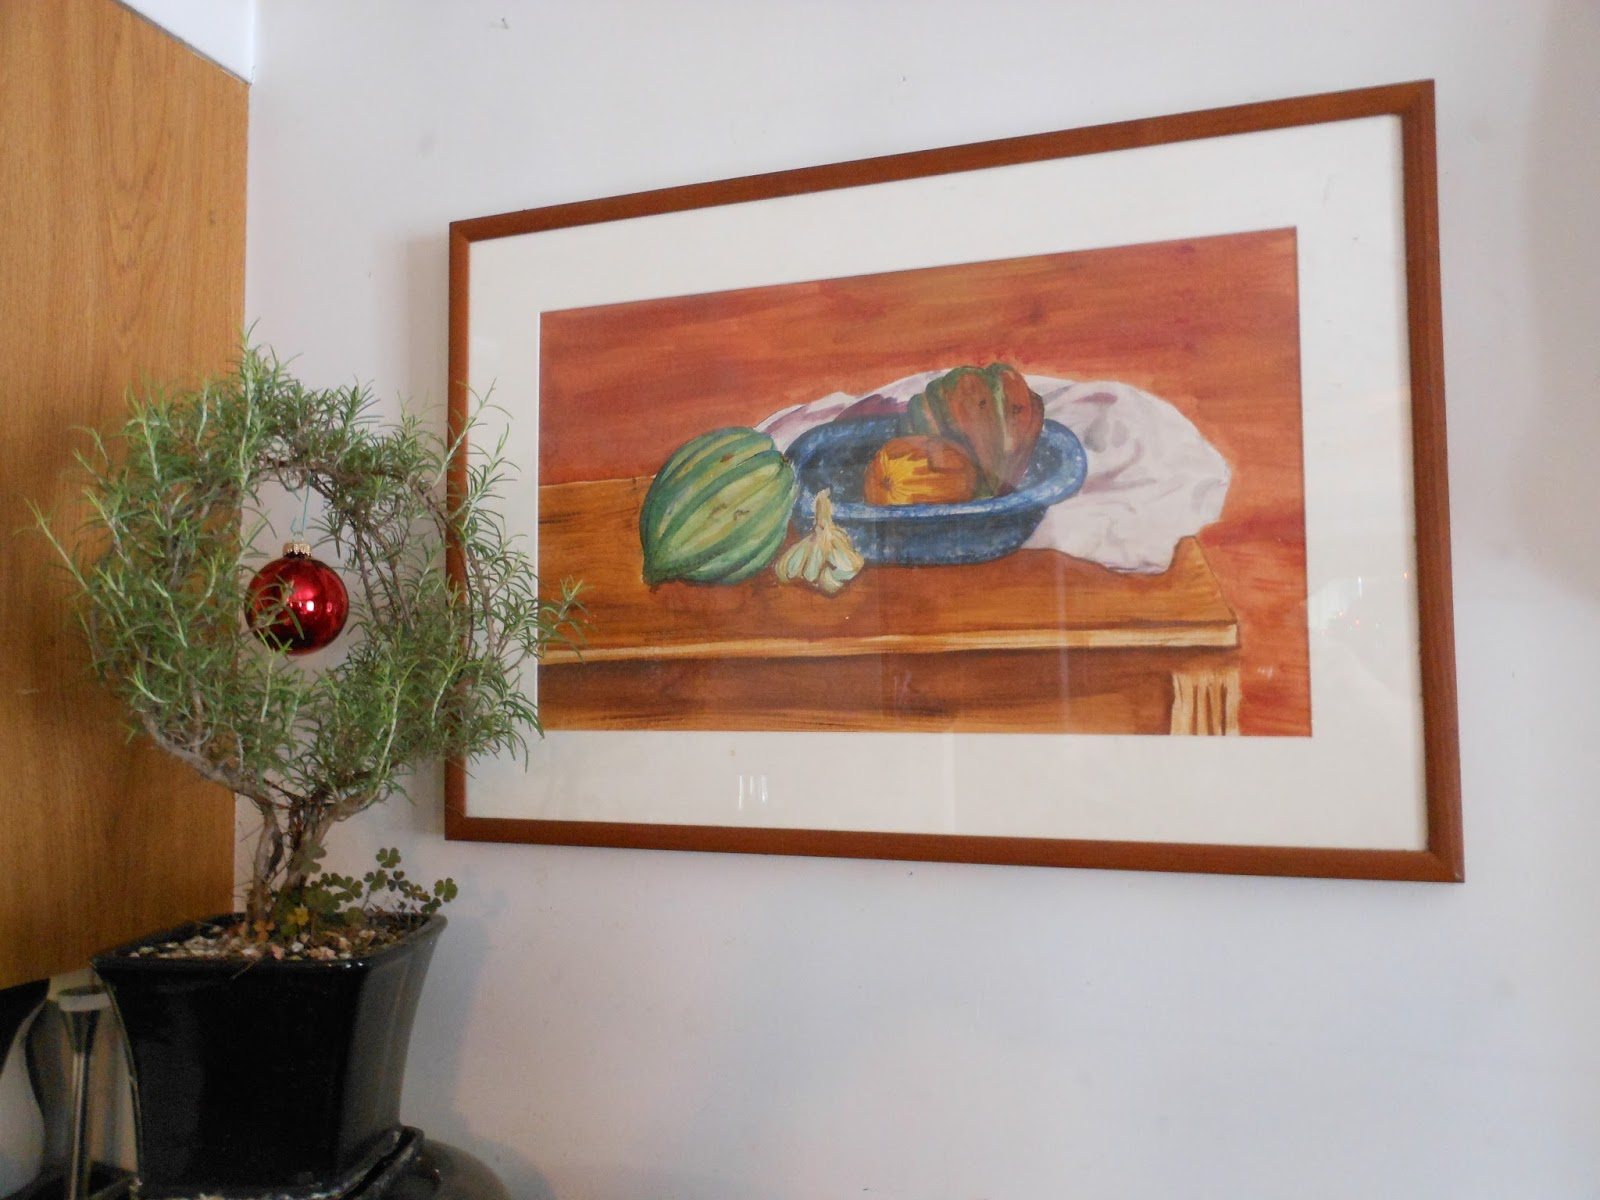 Artwork is a common auction purchase -- but are you really getting the original you bid on?